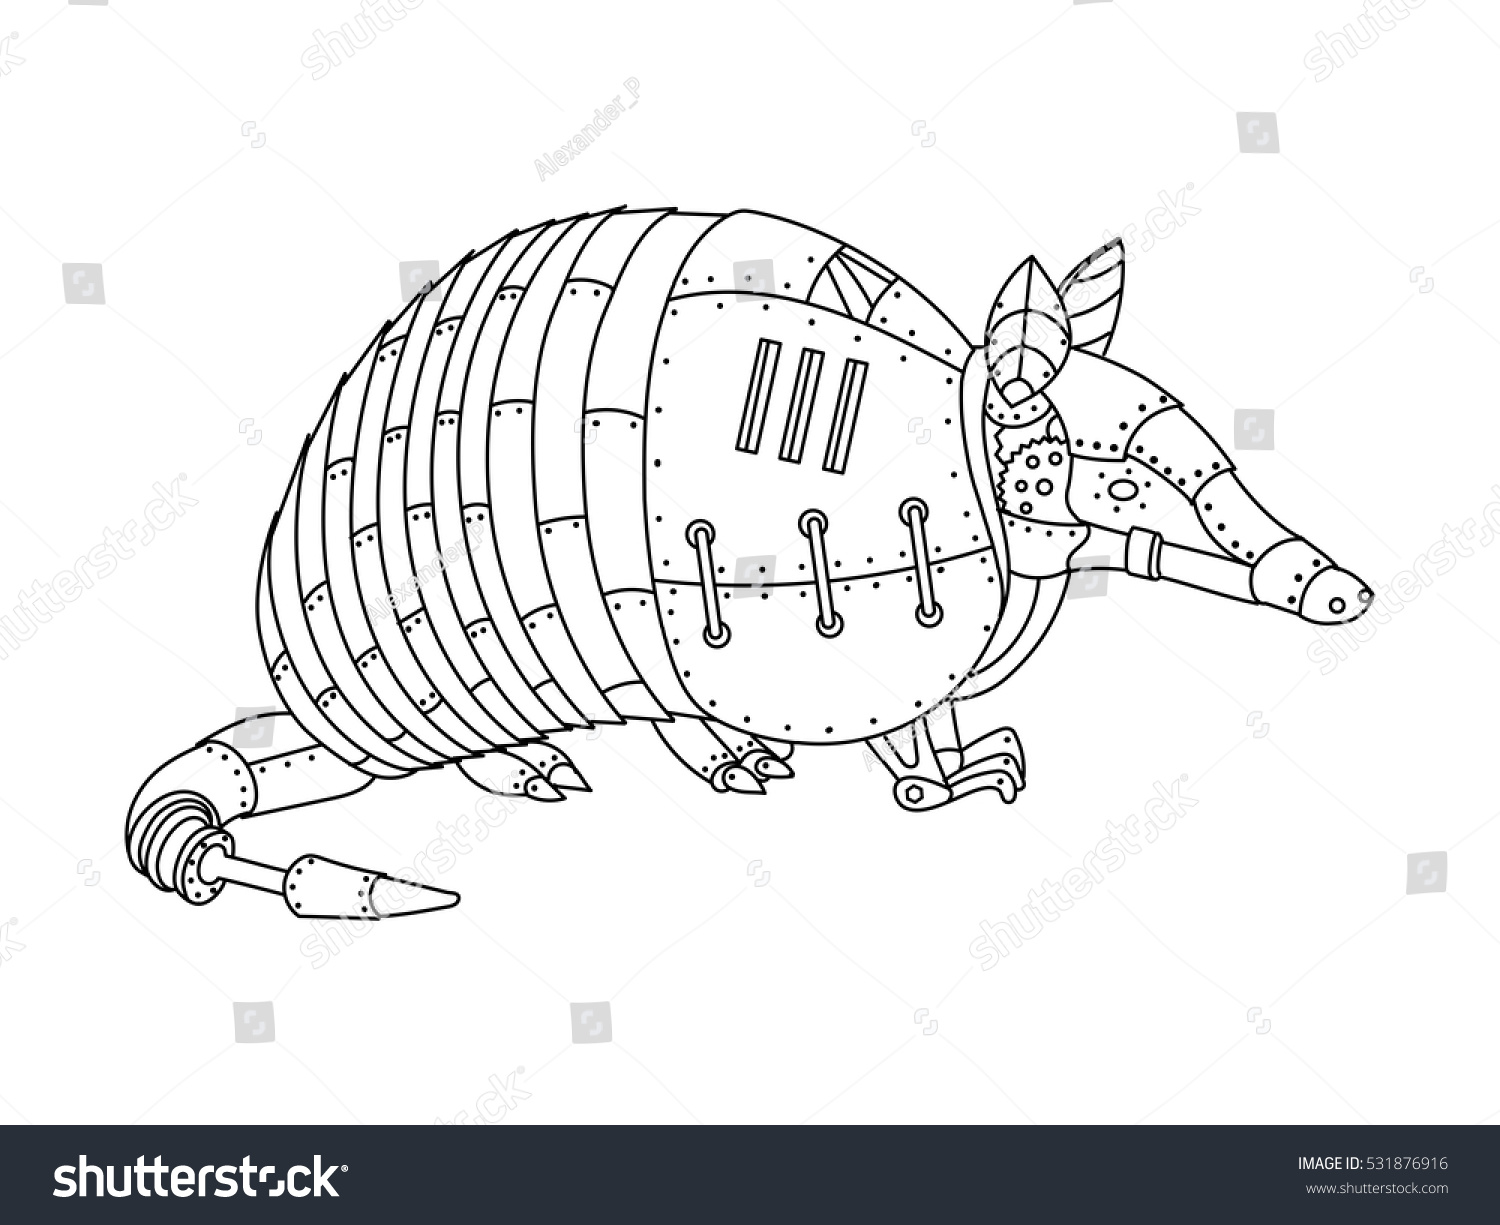 Steampunk Style Armadillo Mechanical Animal Coloring Stock Vector